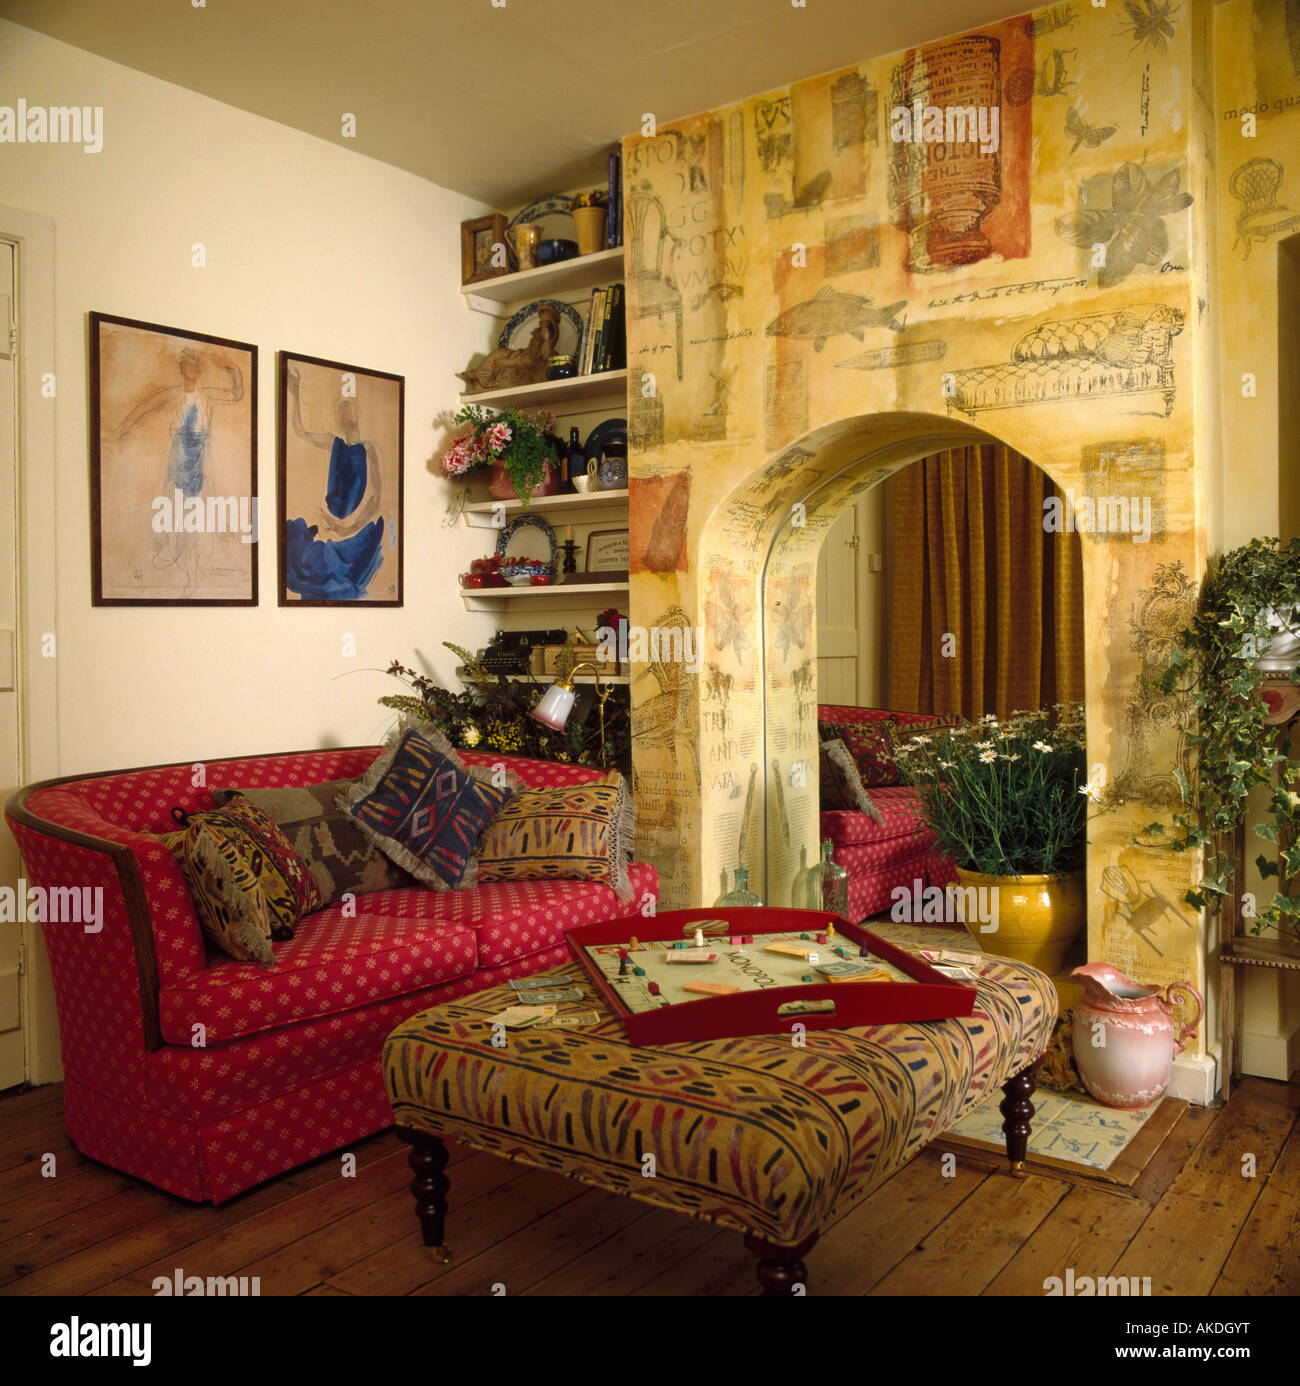 Living Room Alcove Paint Effect Mural On Wall Above Mirrored Fireplace Alcove In